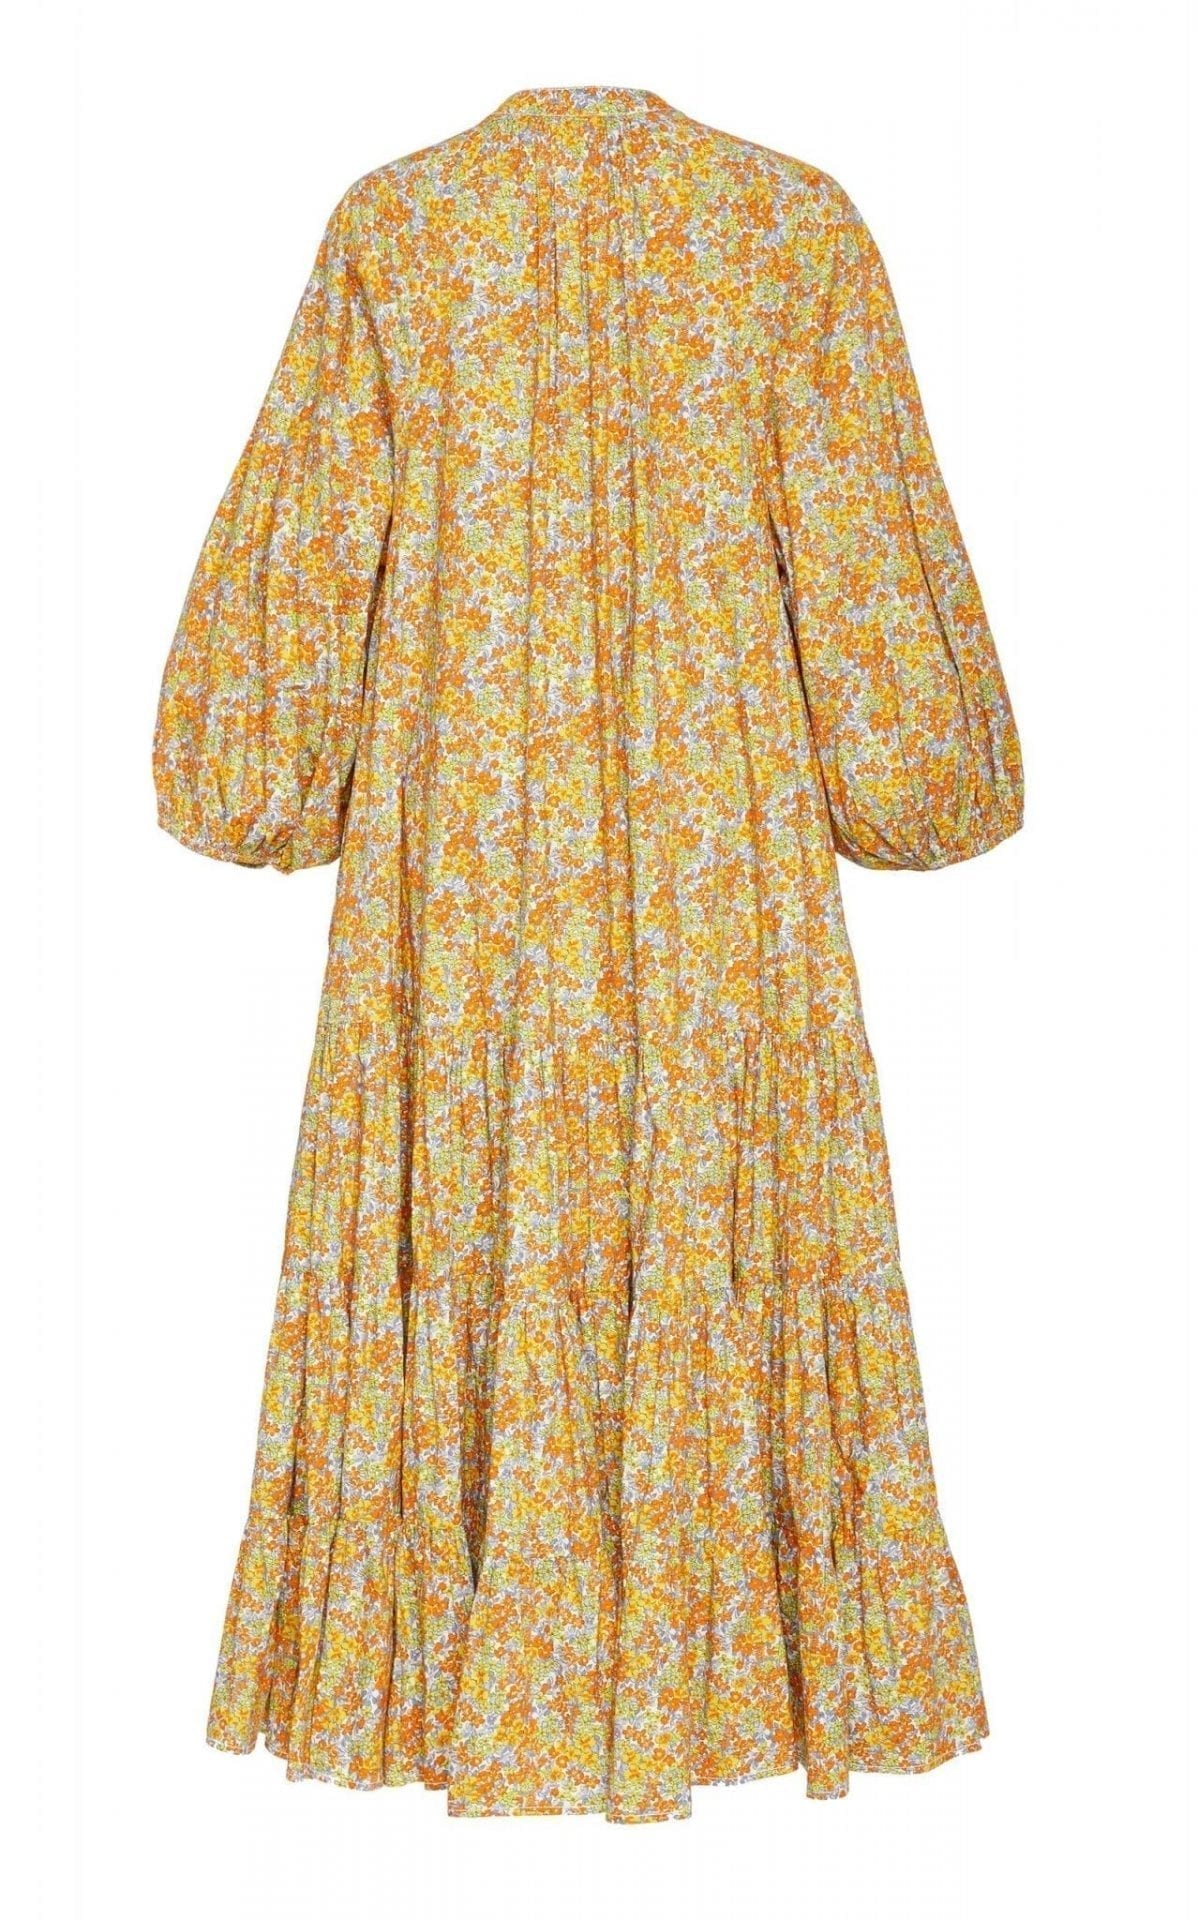 BYTIMO Floral-Print Oversized Cotton Midi Dress